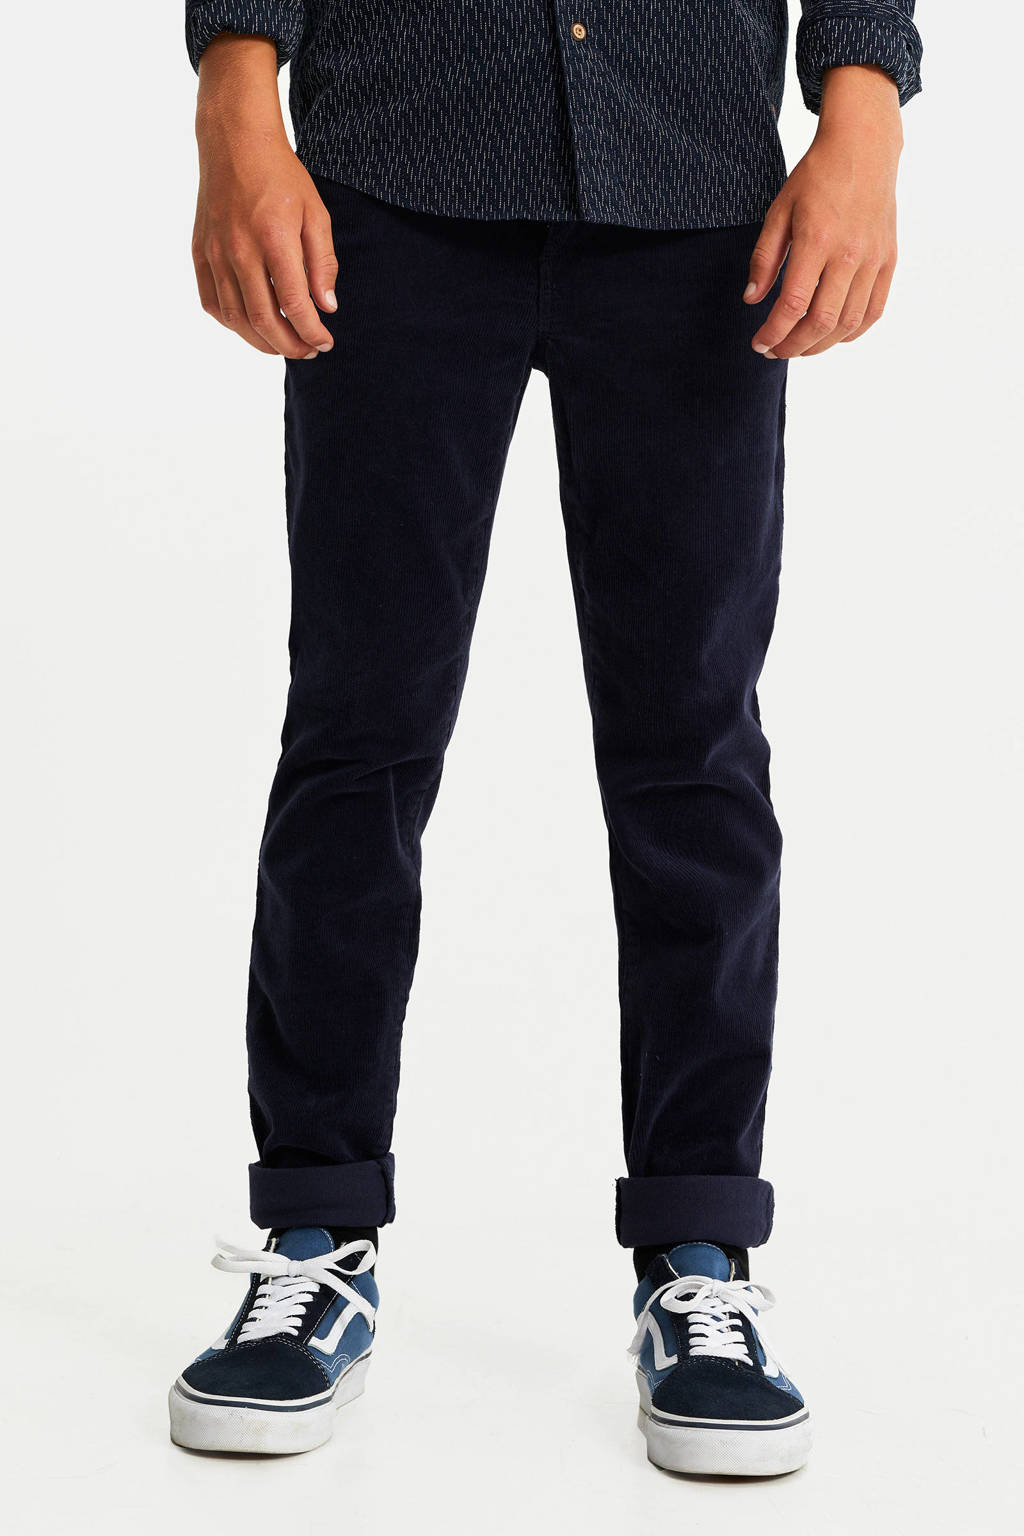 WE Fashion Blue Ridge corduroy slim fit broek donkerblauw, Donkerblauw